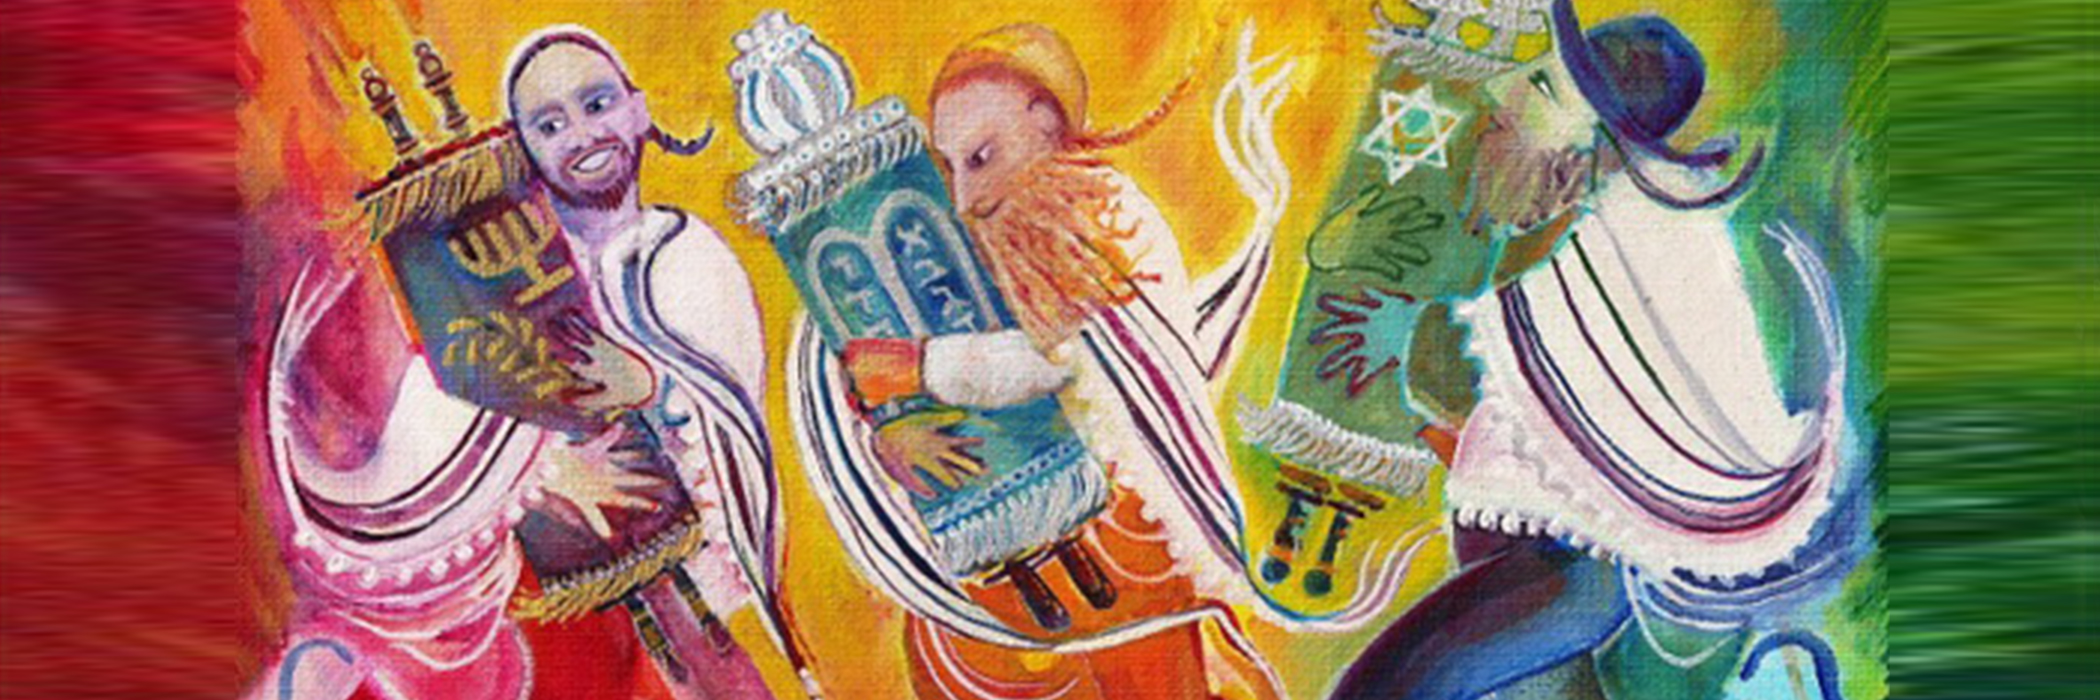 """<a href=""""https://www.kilv.org/event/simchat-torah2.html""""                                     target="""""""">                                                                 <span class=""""slider_title"""">                                     Simchat Torah                                </span>                                                                 </a>                                                                                                                                                                                       <span class=""""slider_description"""">Come join us on 9/27 for a socially distanced and safe way to celebrate our Torahs and the yearly cycle!</span>                                                                                     <a href=""""https://www.kilv.org/event/simchat-torah2.html"""" class=""""slider_link""""                             target="""""""">                             Learn More                            </a>"""